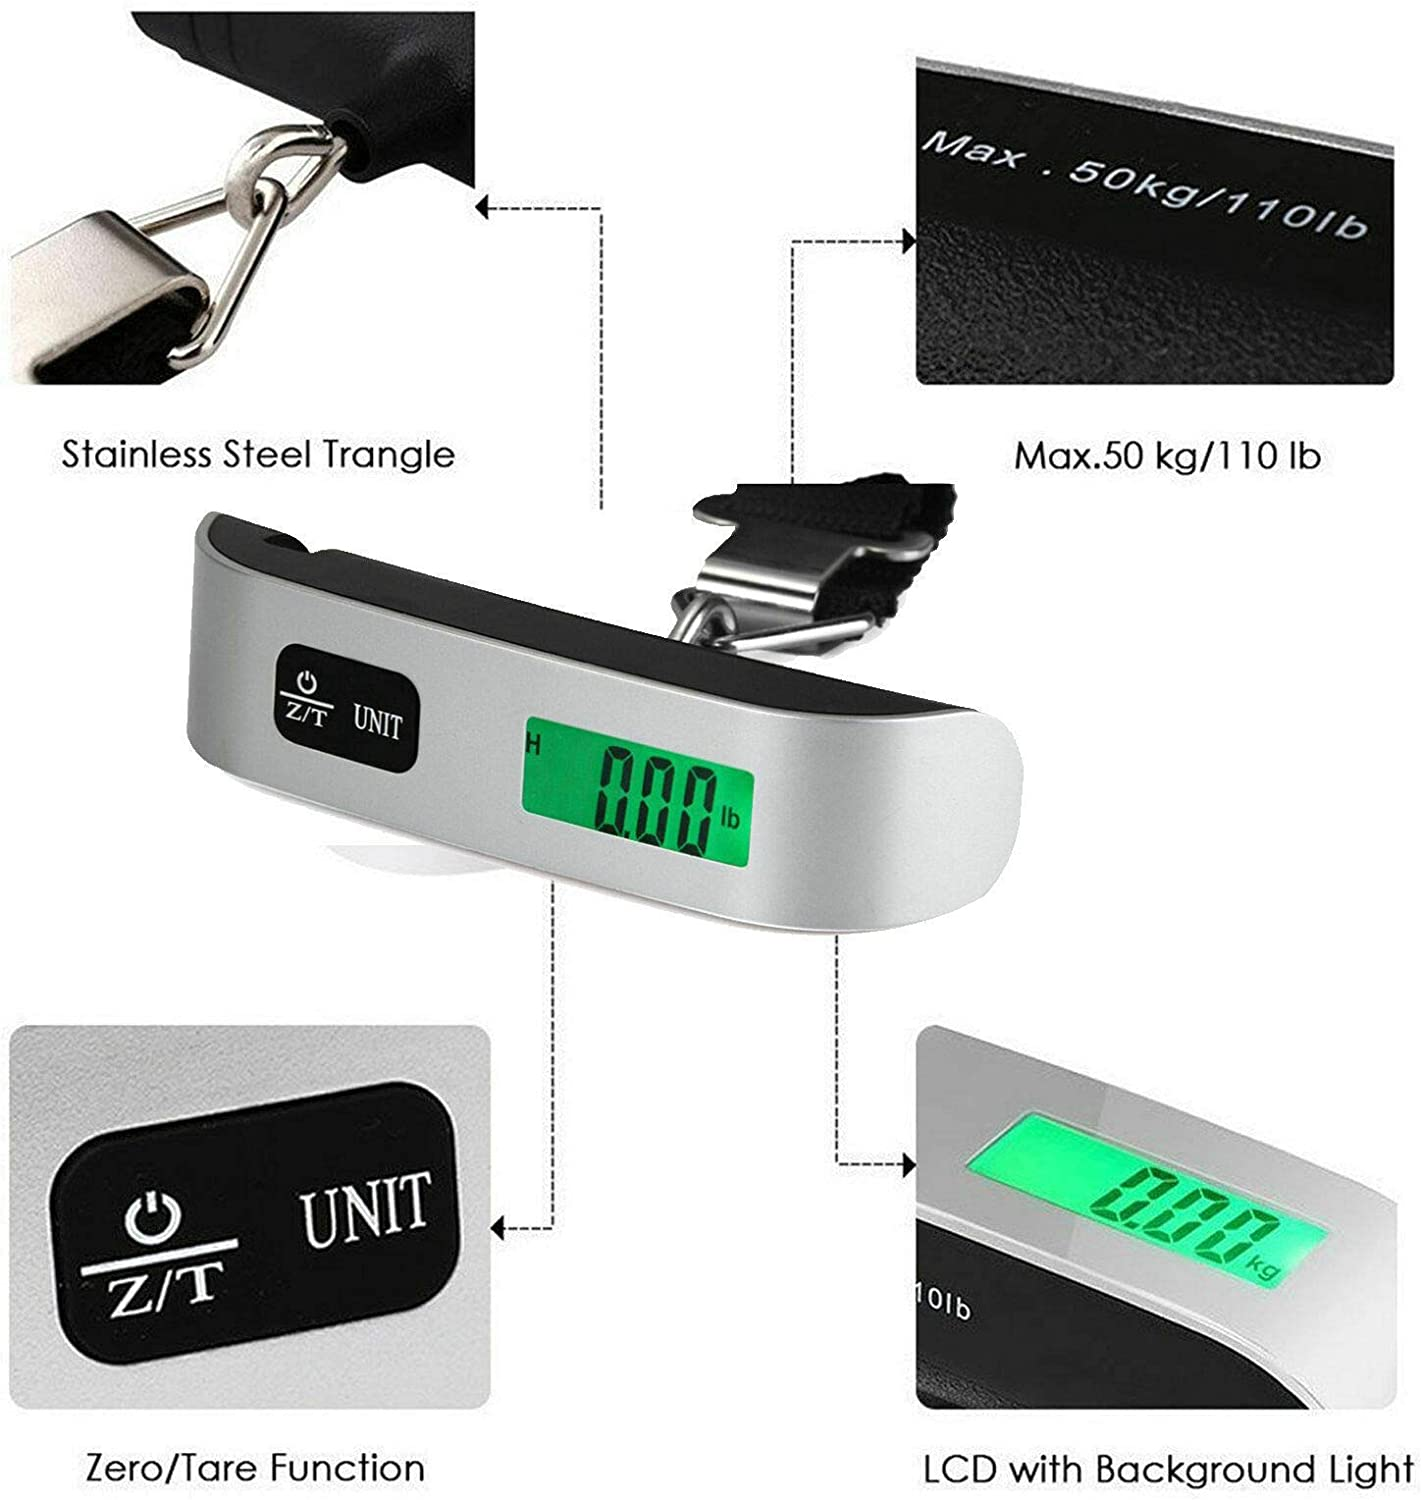 5 Core Digital Luggage Scale 110 Lbs Battery Included hook Portable Handheld